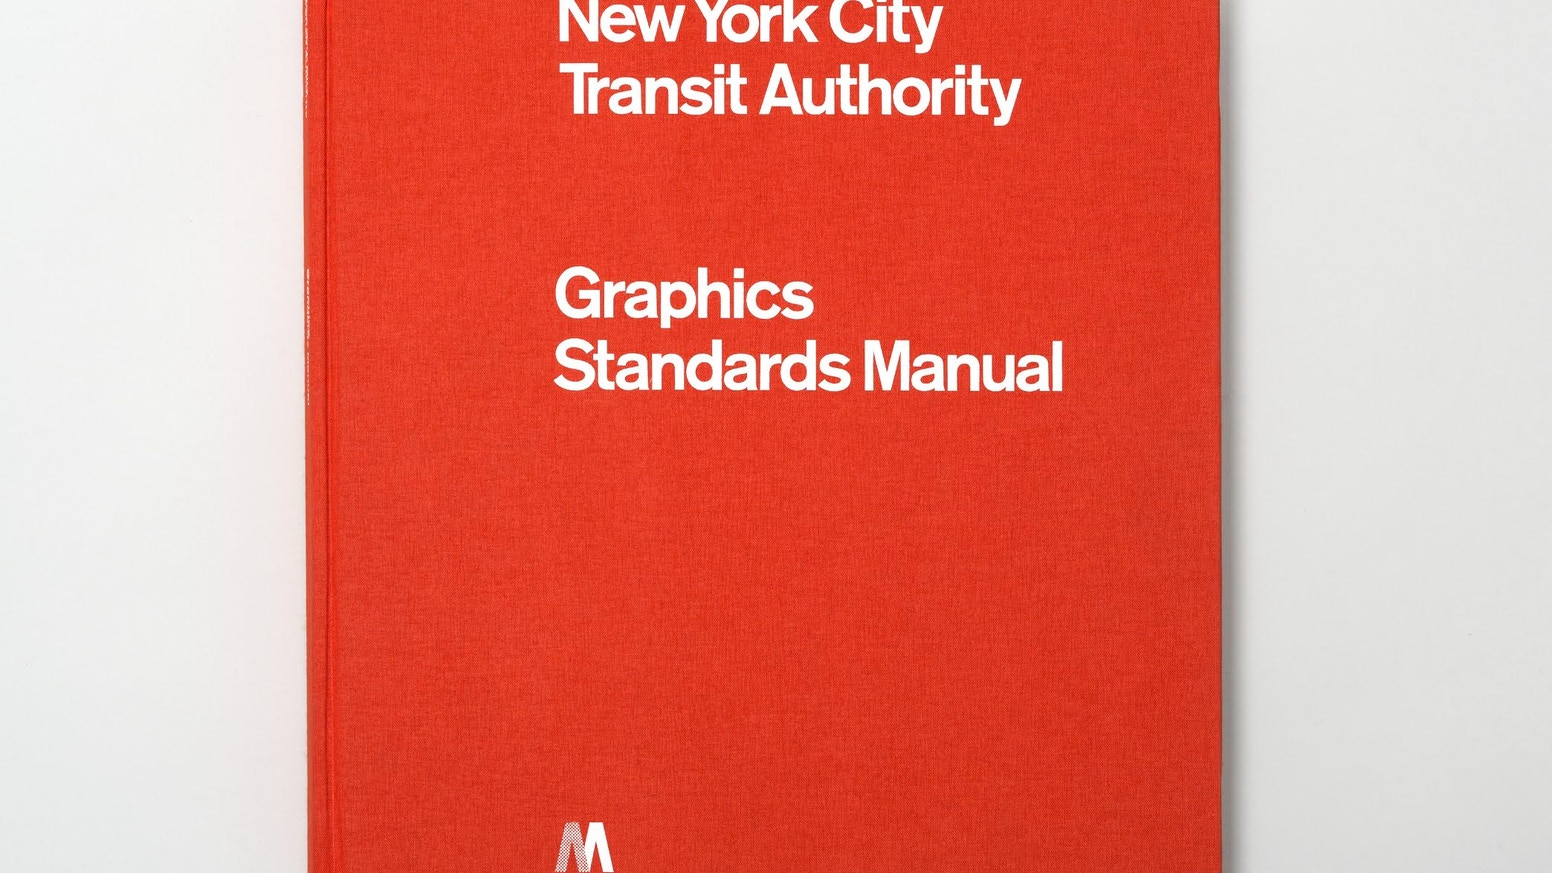 Limited edition reissue of the 1970 New York City Transit Authority  Graphics Standards Manual, by